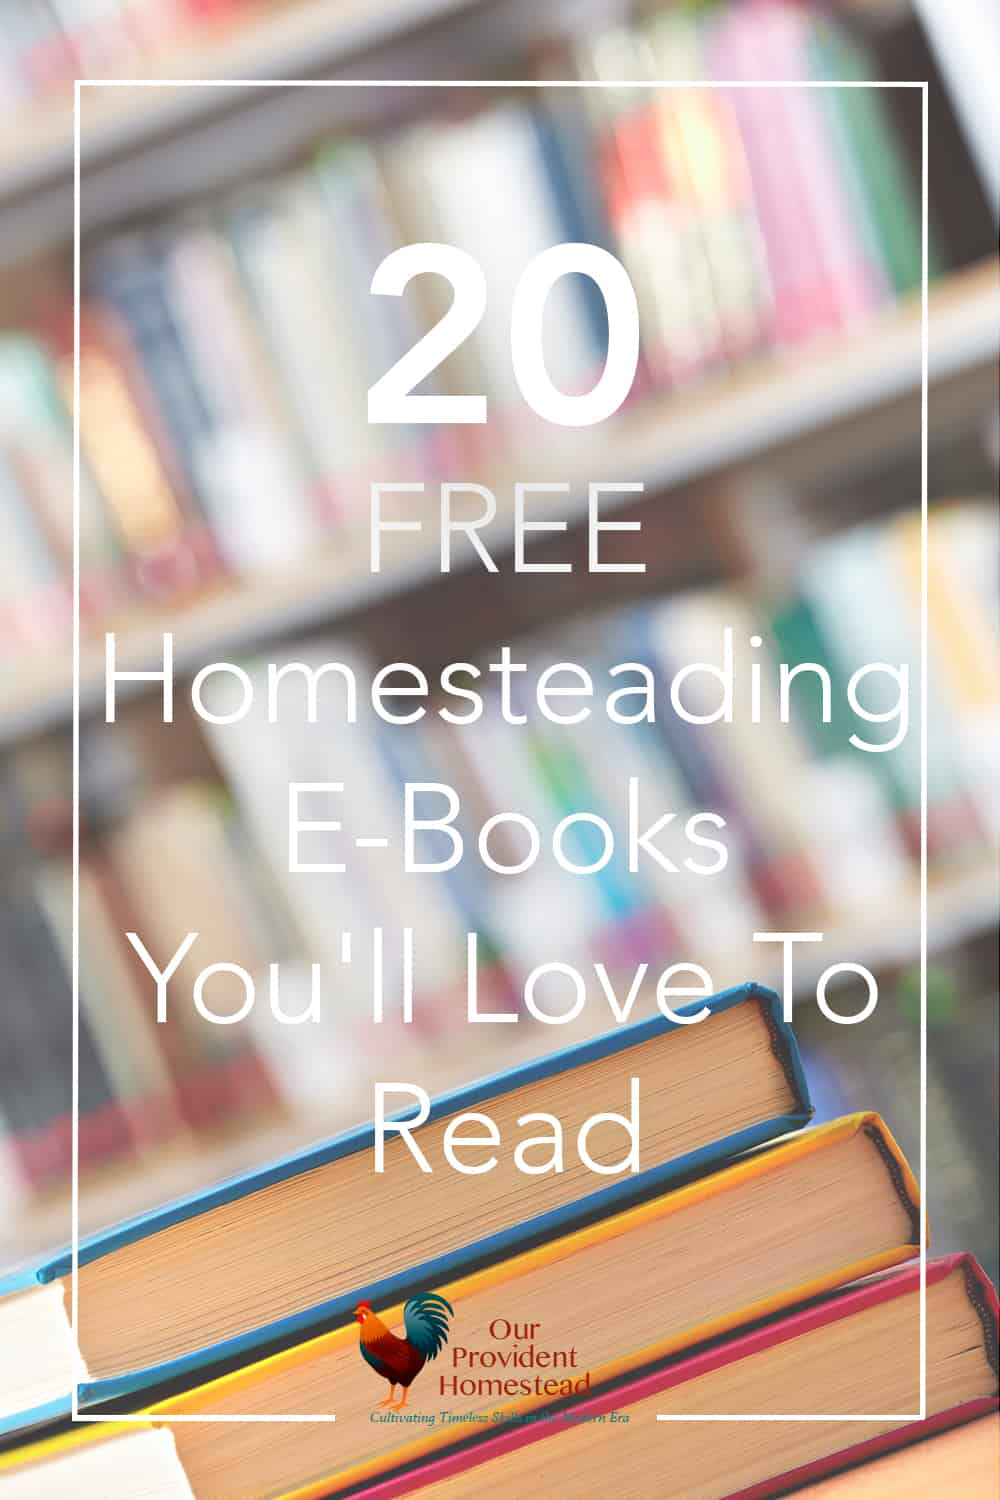 Free is good, right? Click here to 20 free homesteading e-books you'll love and get started on your homesteading dream today.